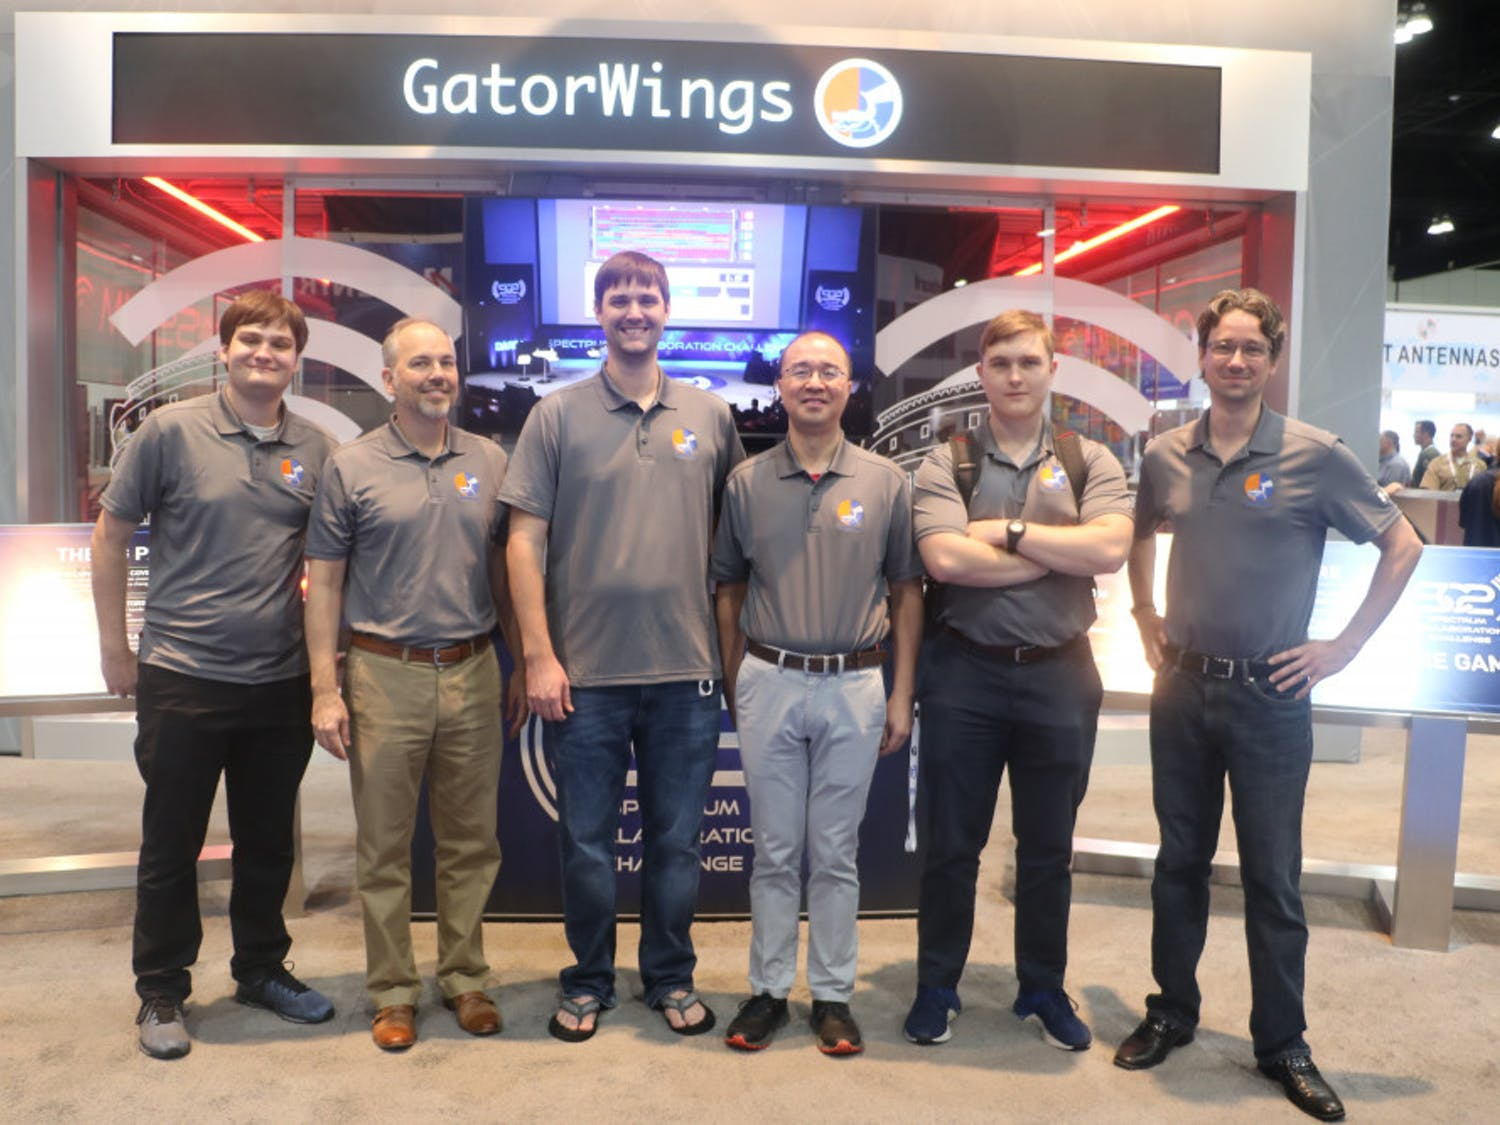 Team GatorWings (left to right: Marco Menendez, Dr. John Shea, Tyler Ward, Dr. Tan Wong, Caleb Bowyer, and David Greene). Photo emailed to me from John Shea.